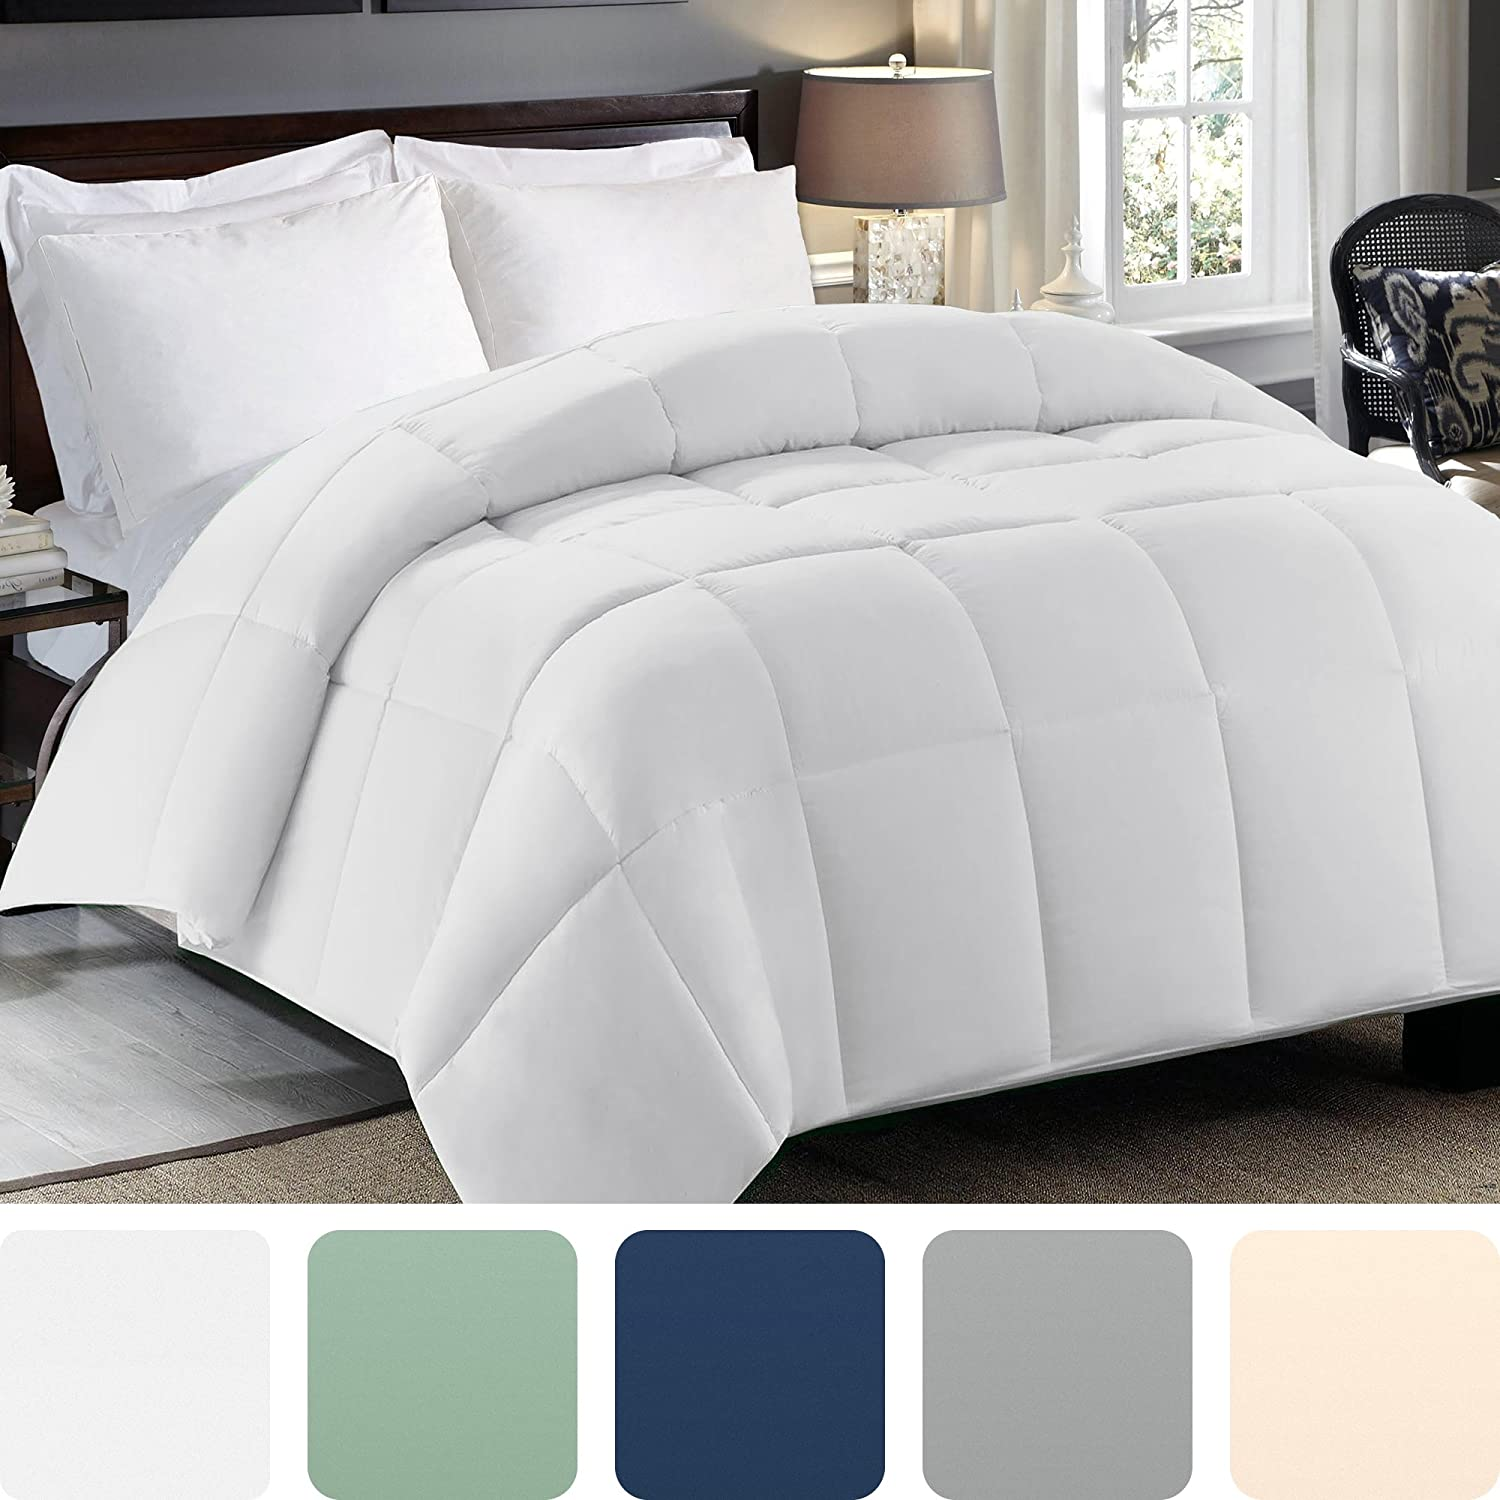 Cosy House Collection Premium Down Alternative Comforter - White - All Season Hypoallergenic Bedding - Lightweight and Machine Washable - Duvet Insert - (Twin/Twin XL)